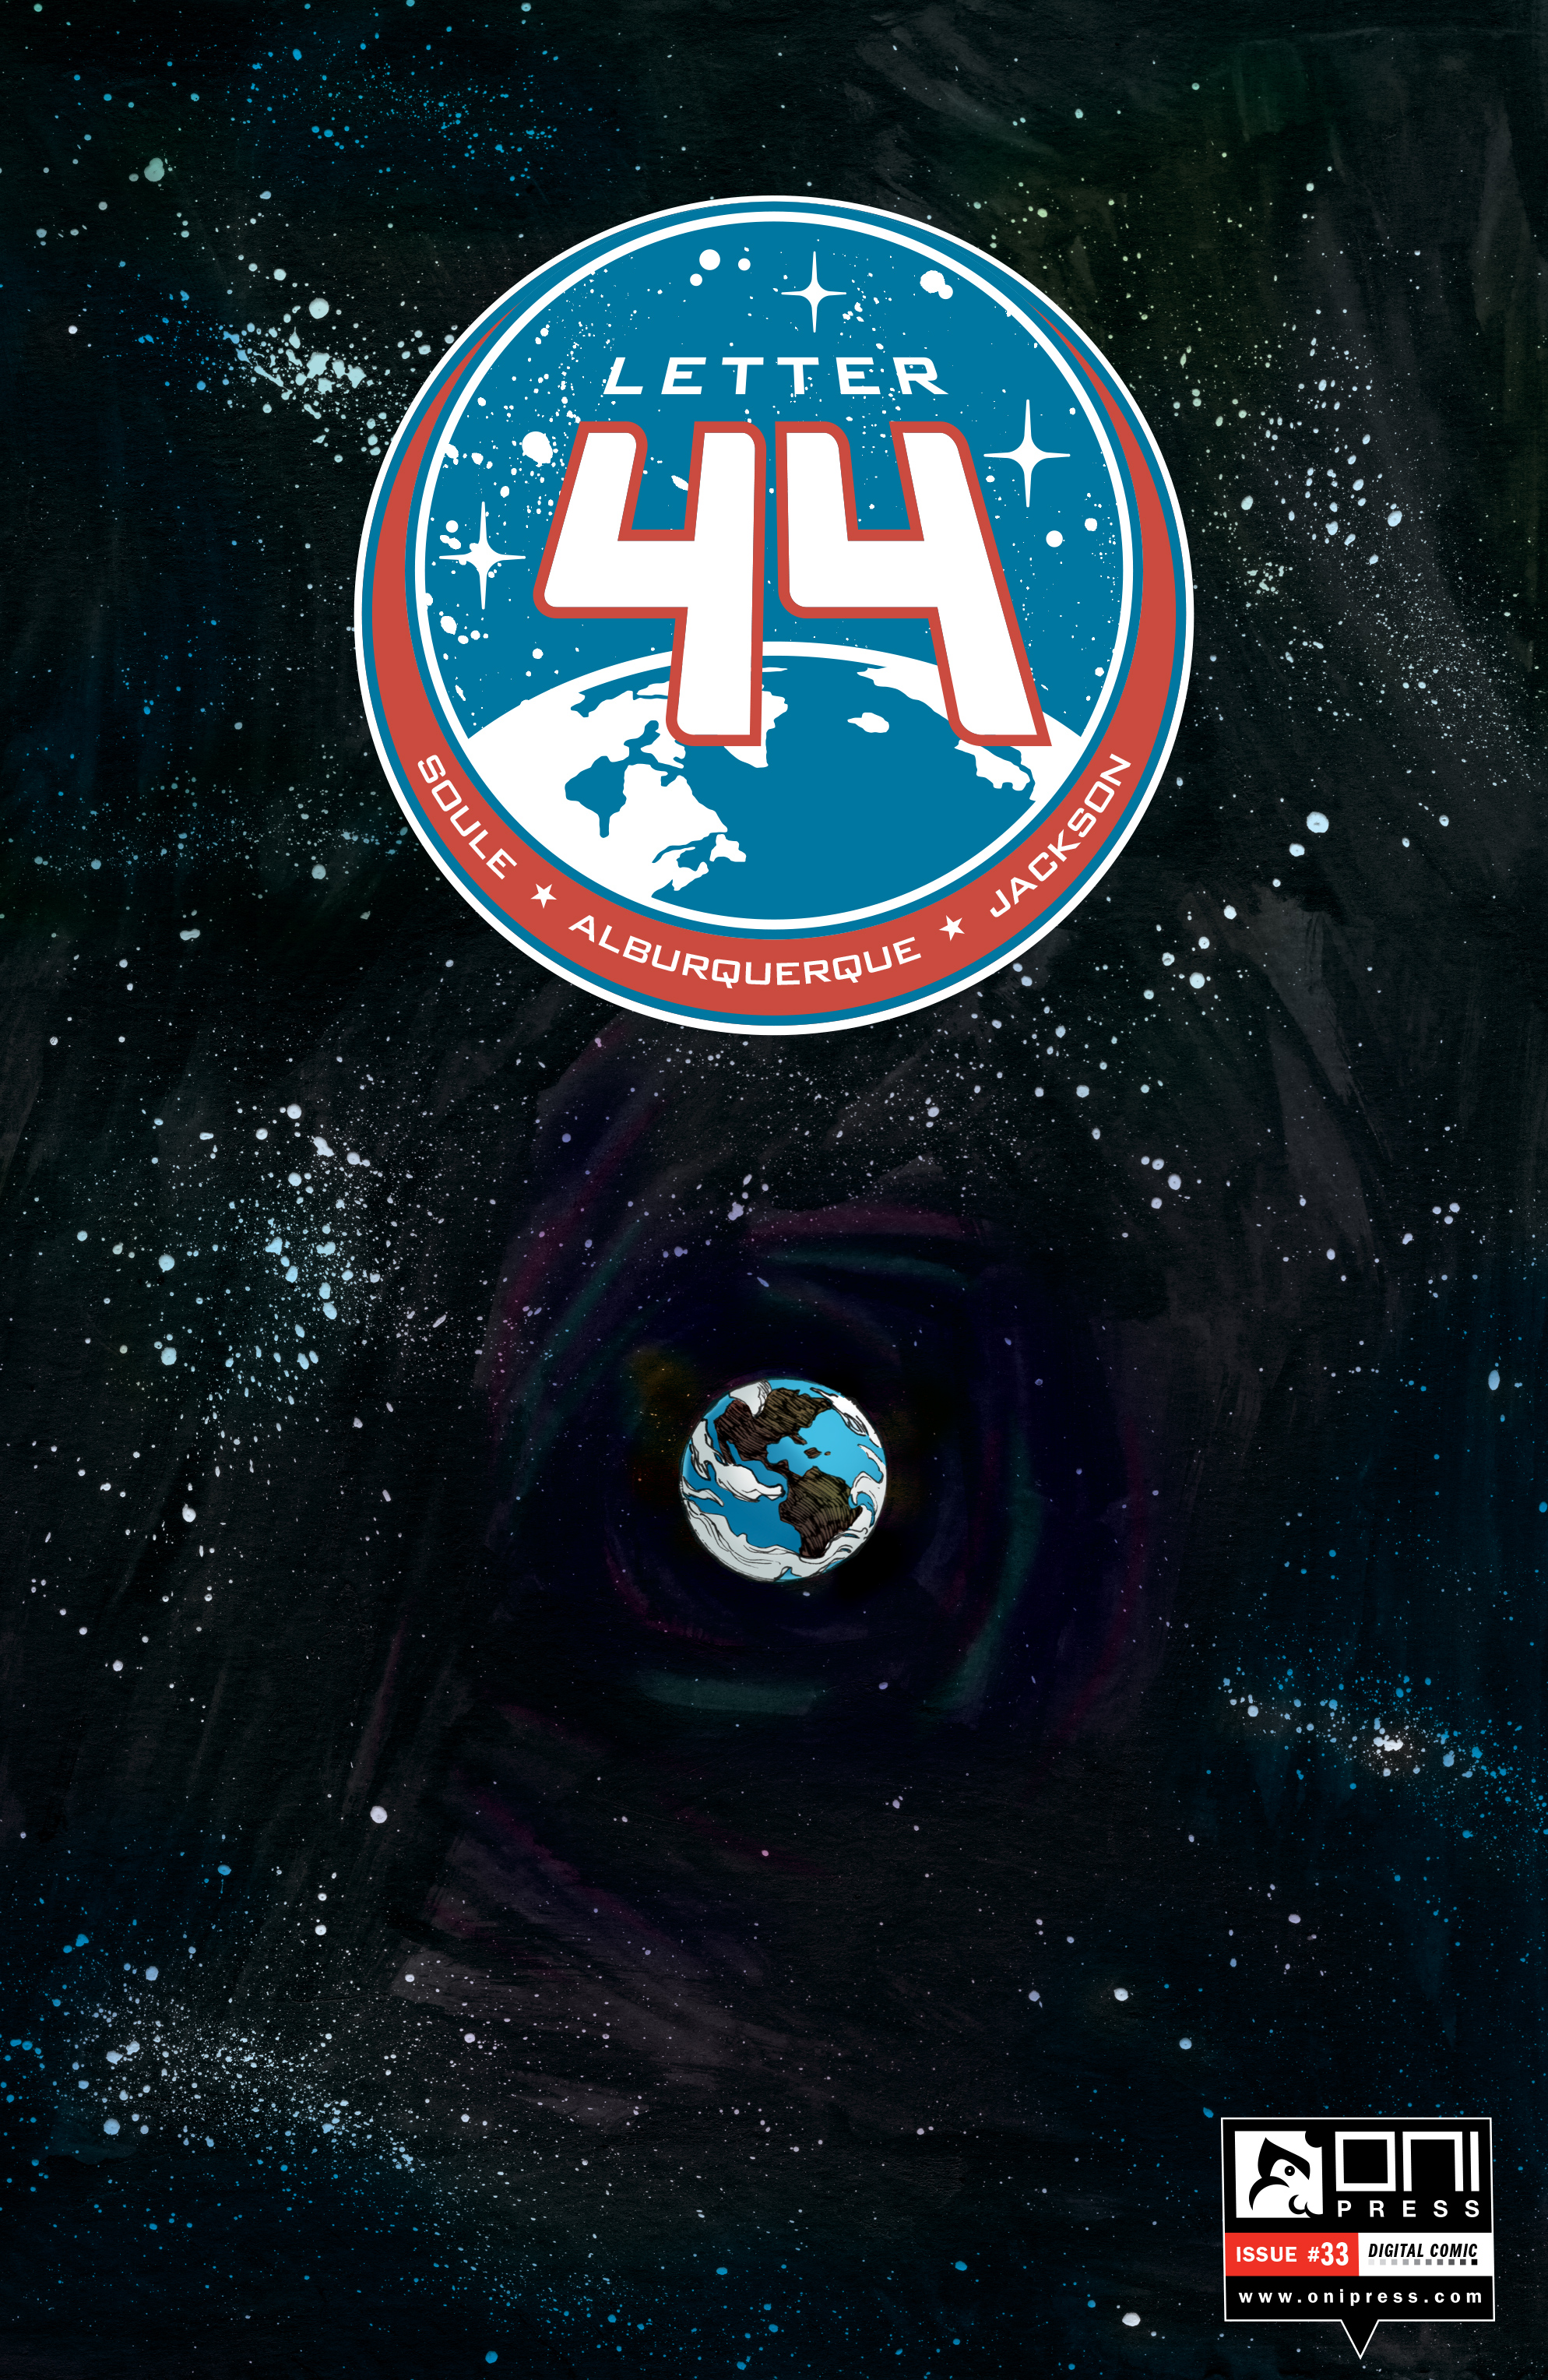 Read online Letter 44 comic -  Issue #33 - 1